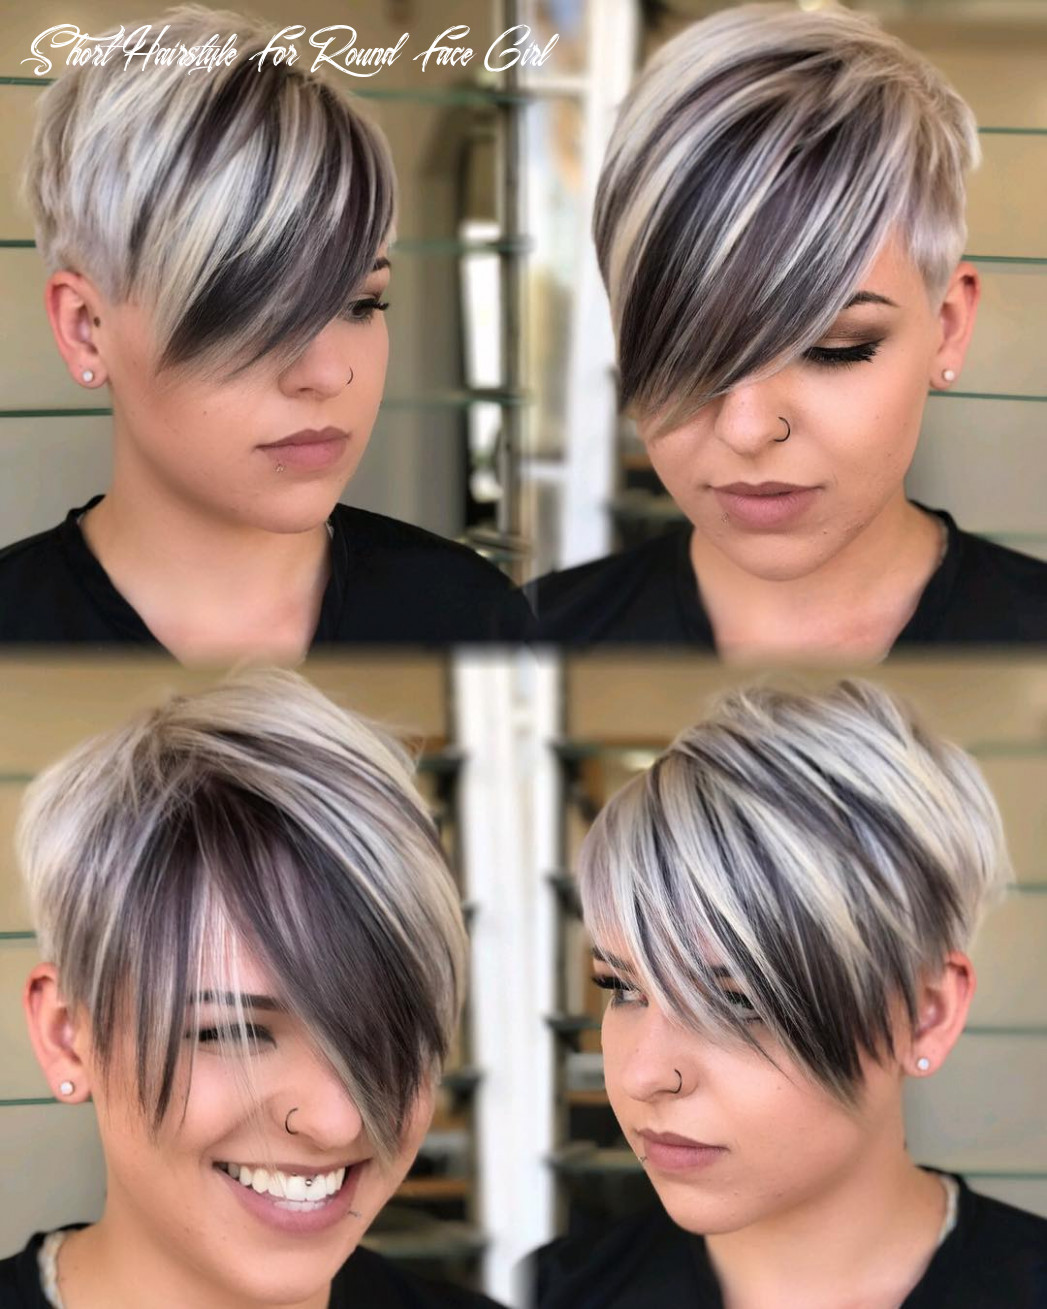 10 short hairstyles for round faces with slimming effect hadviser short hairstyle for round face girl